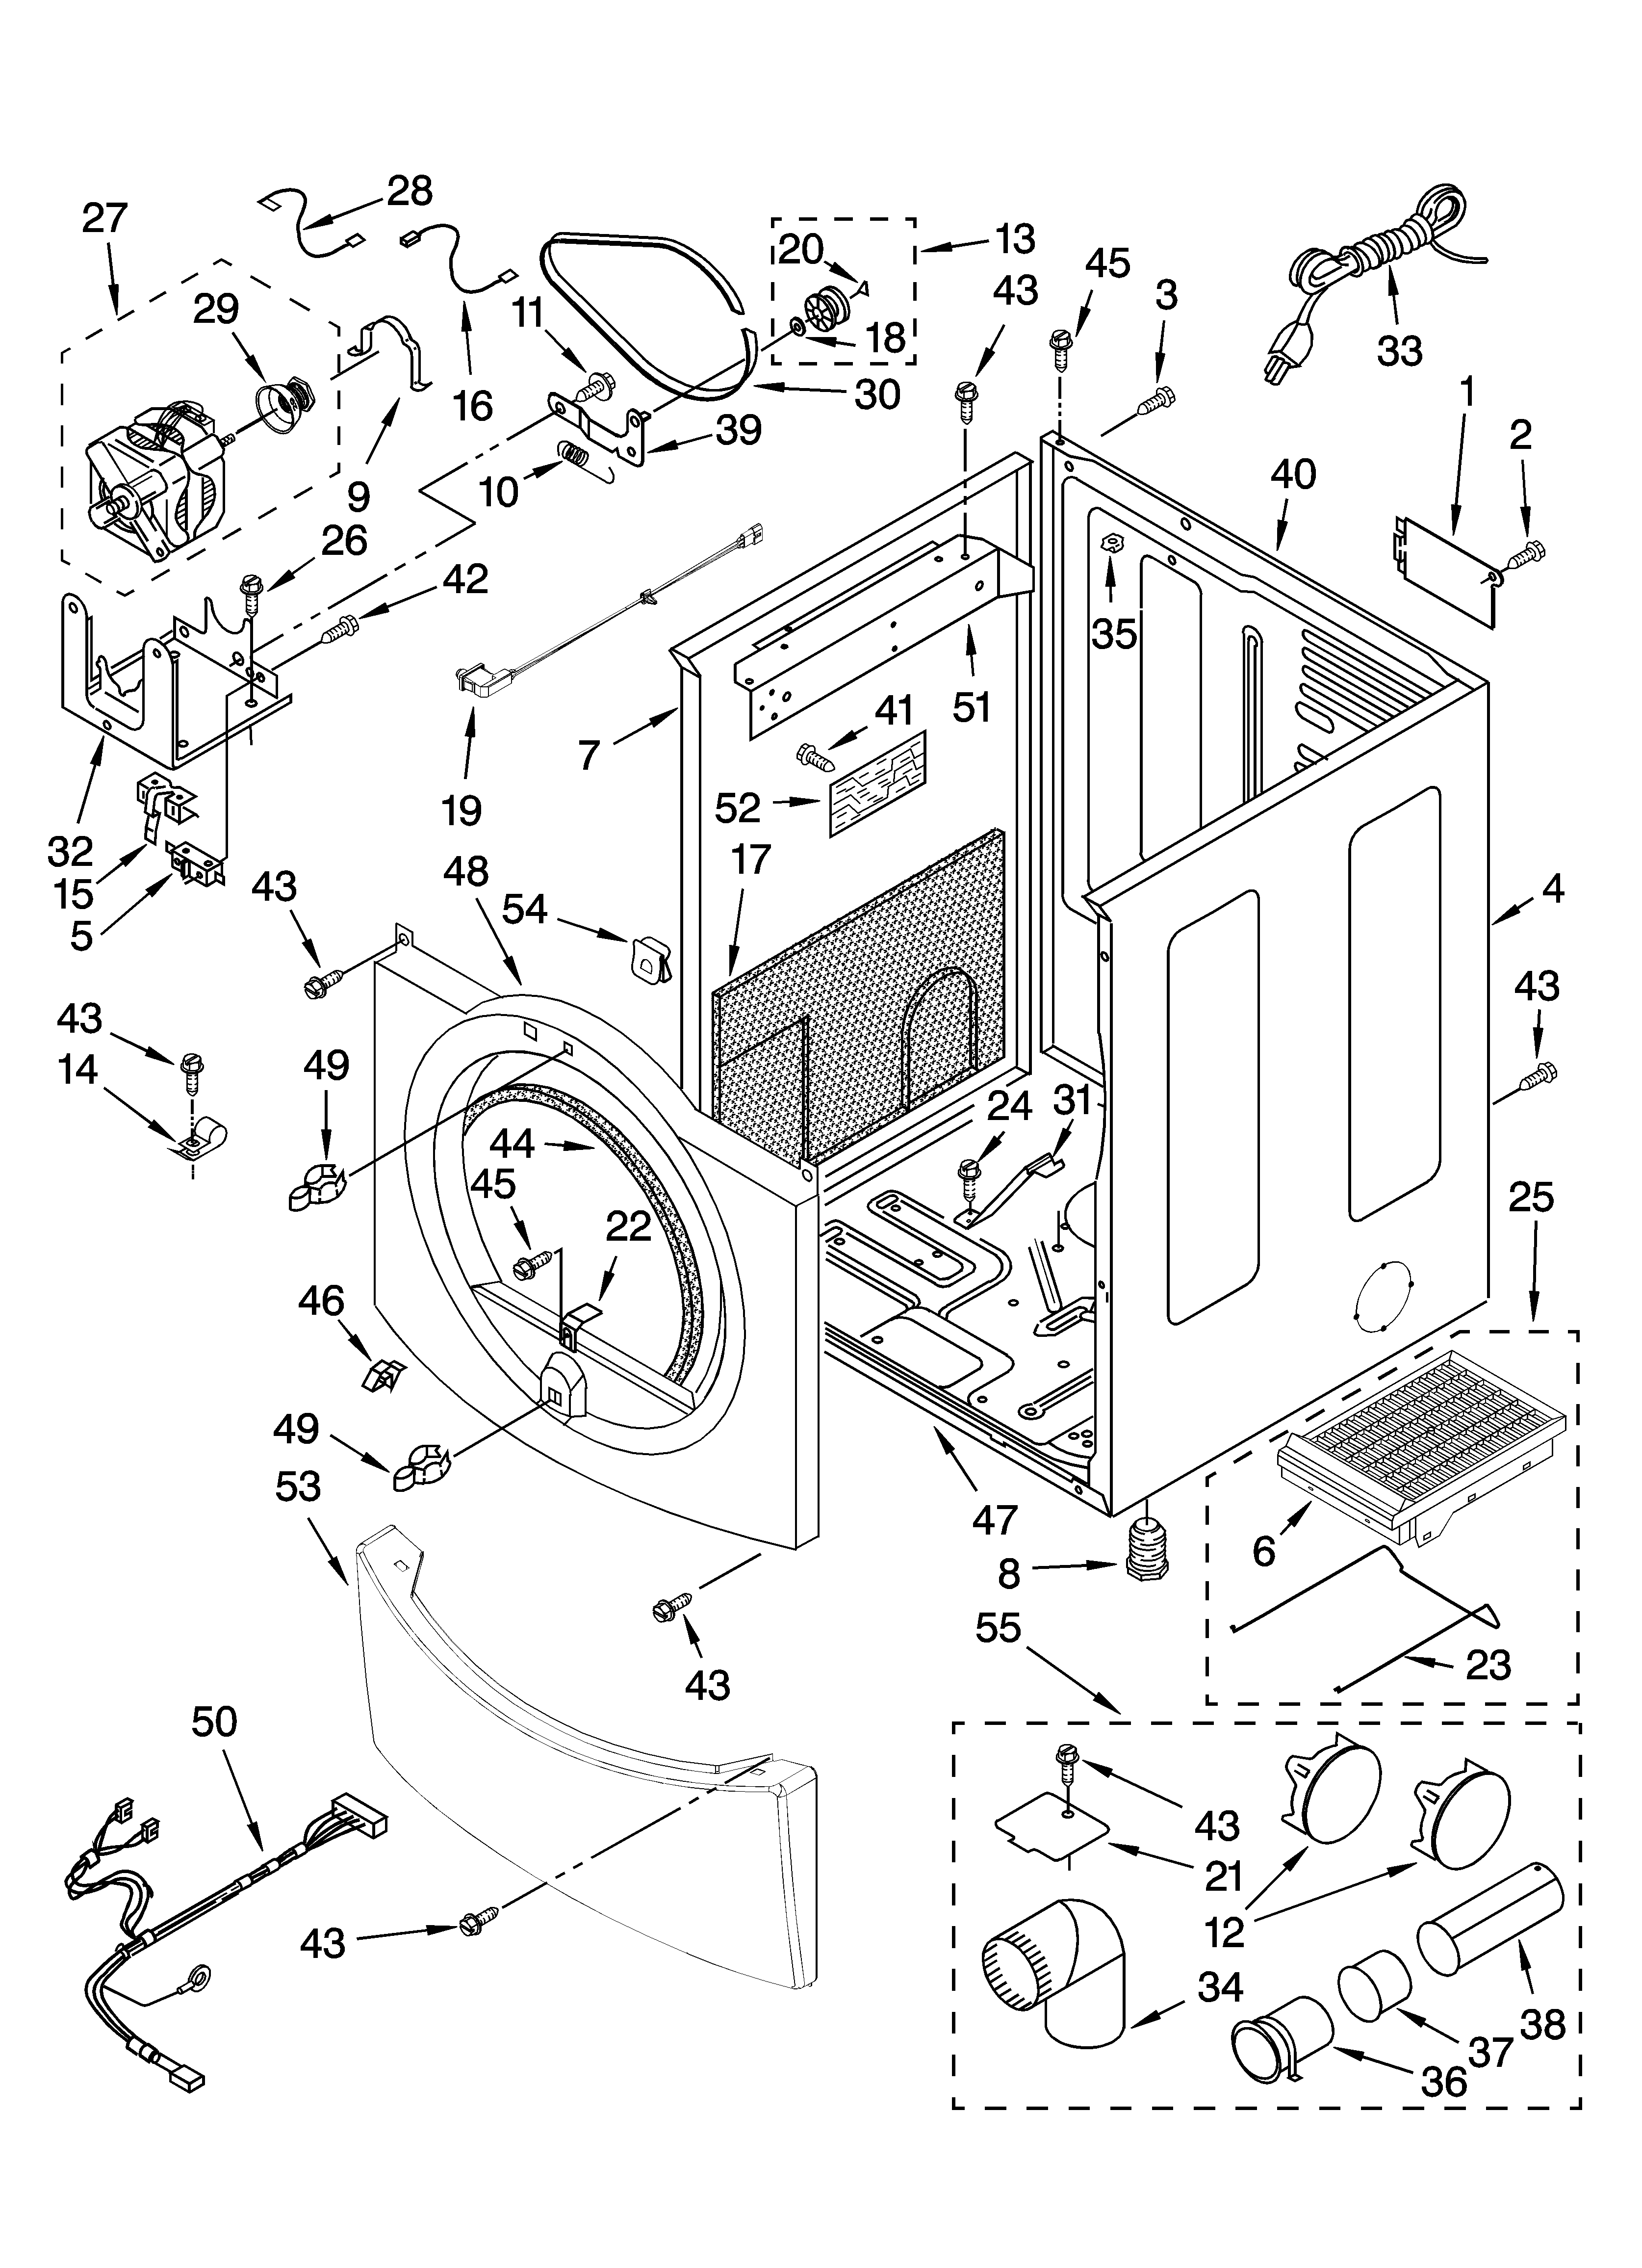 parts diagram parts list for model mgd9700sq0 maytagparts dryer